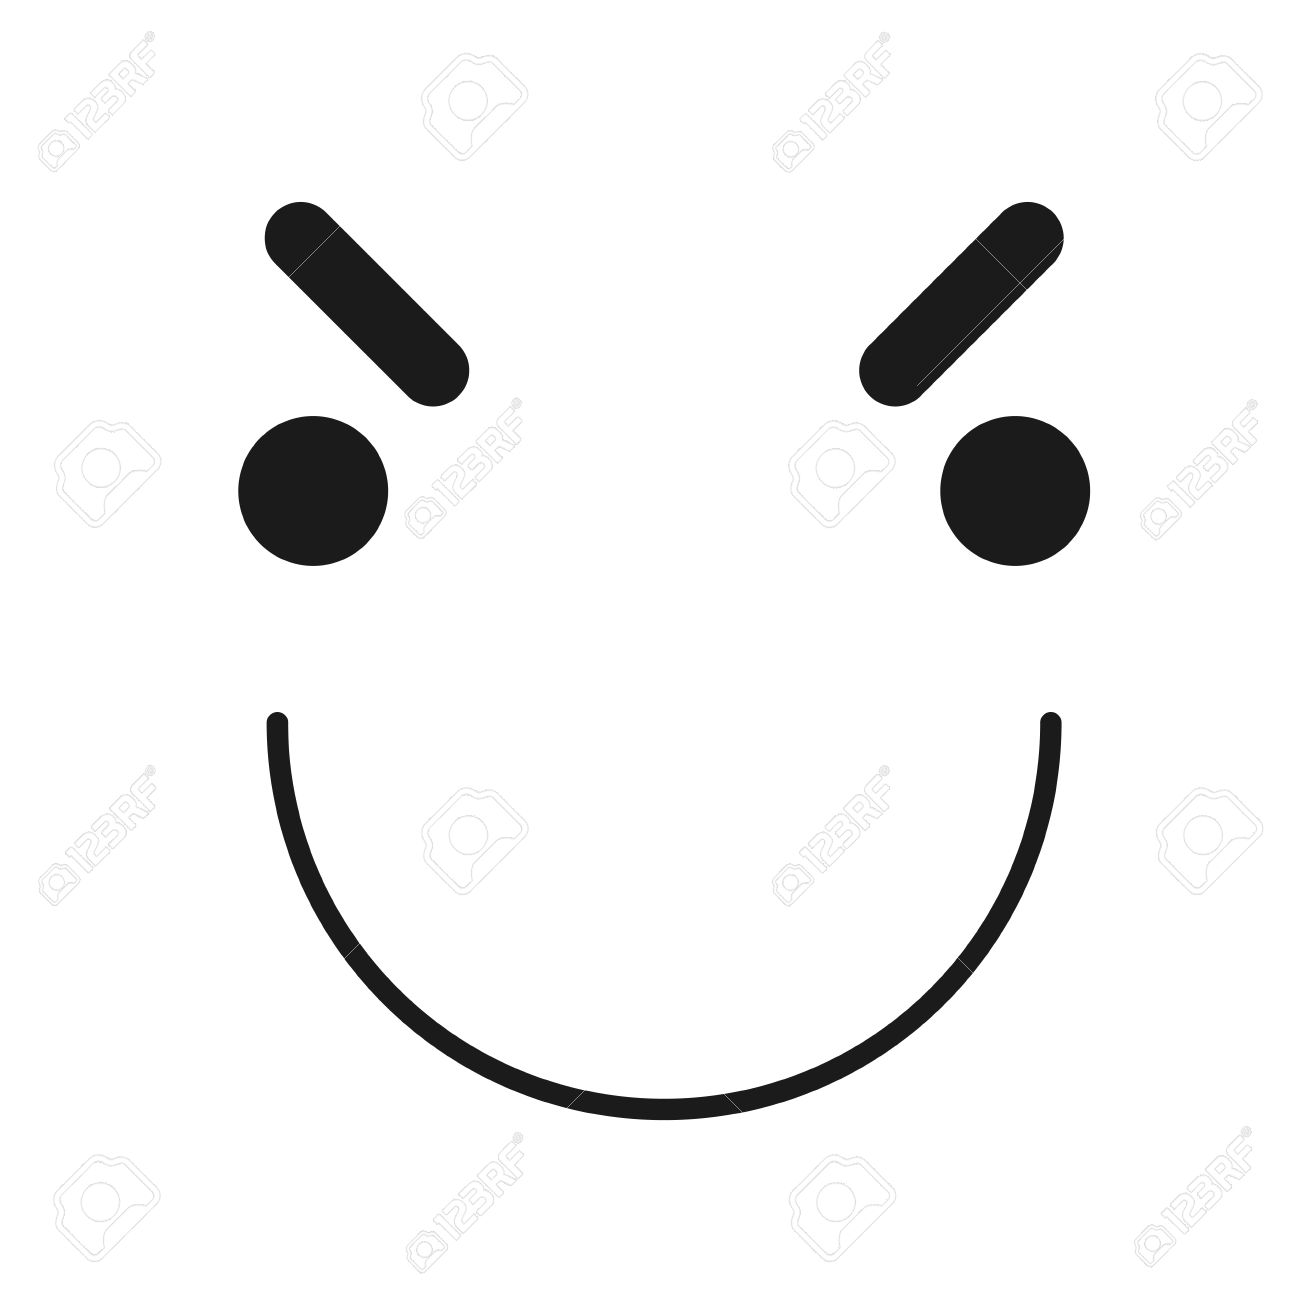 Cartoon Face Icon With An Evil Smile Royalty Free Cliparts Vectors And Stock Illustration Image 60273133 Download the perfect evil smile pictures. cartoon face icon with an evil smile